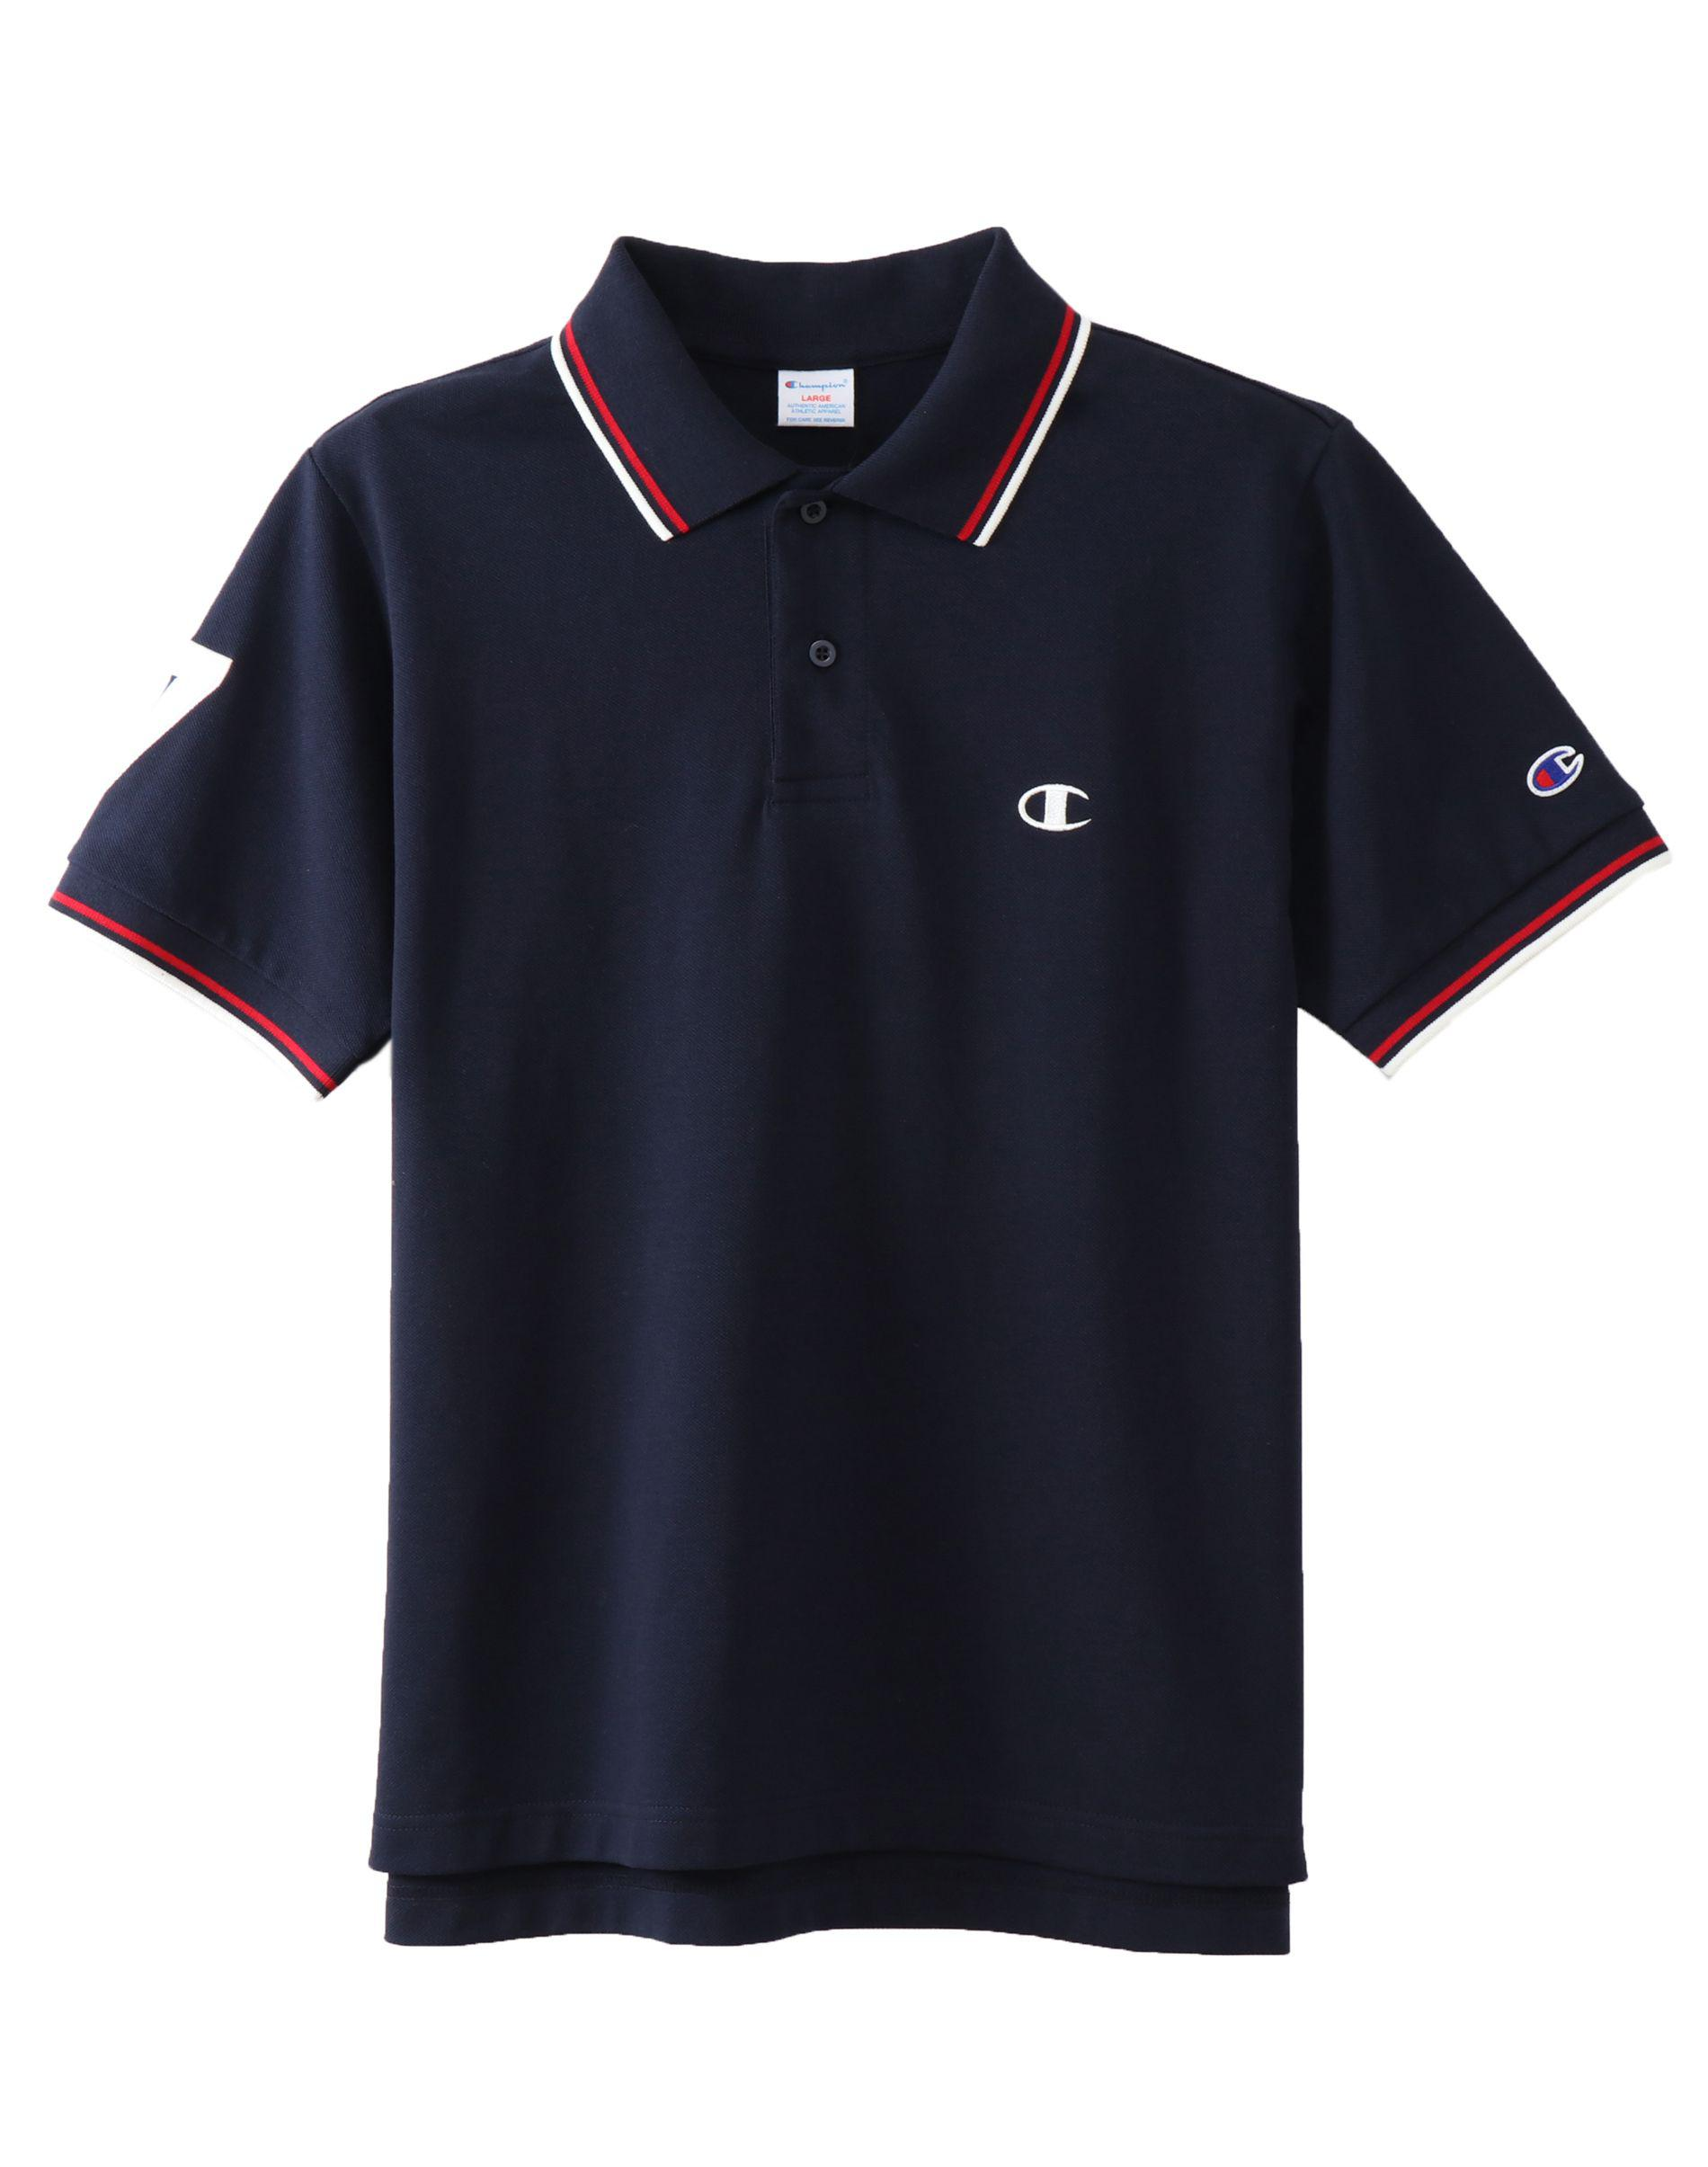 d0eb1d5b Champion Japan Premium Campus Polo Shirt in Blue for Men - Lyst